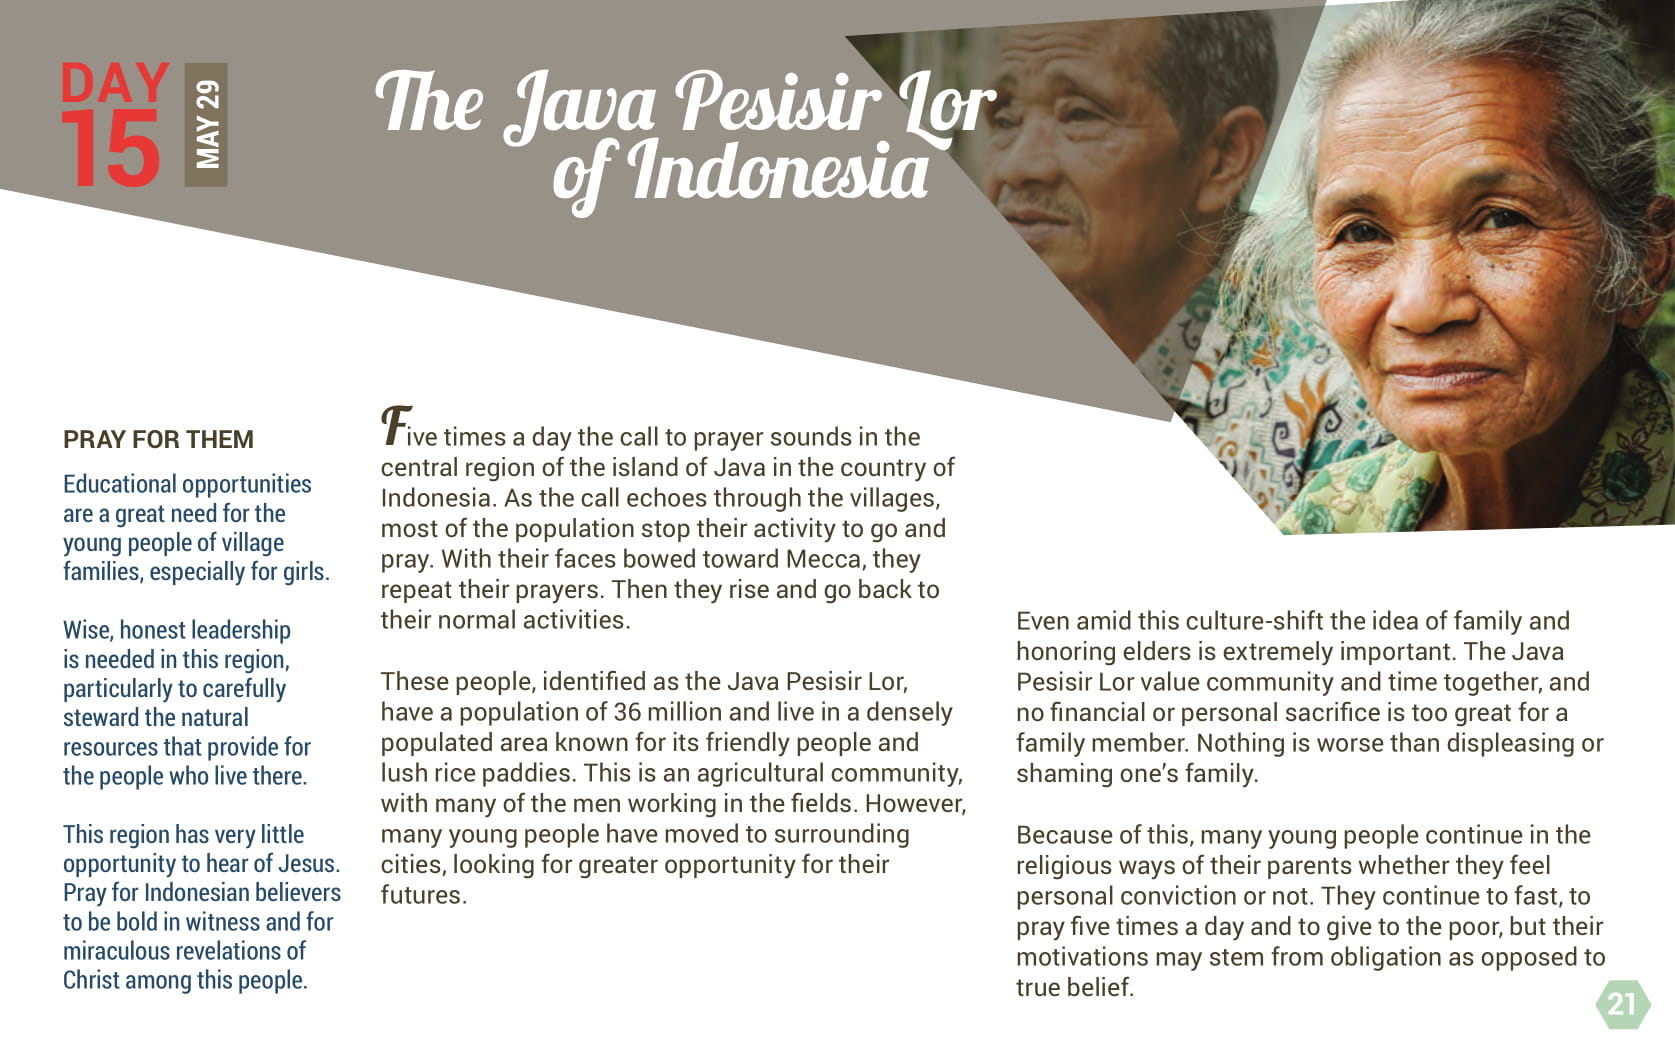 Day 15 - The Java Pesisir Lor of Indonesia